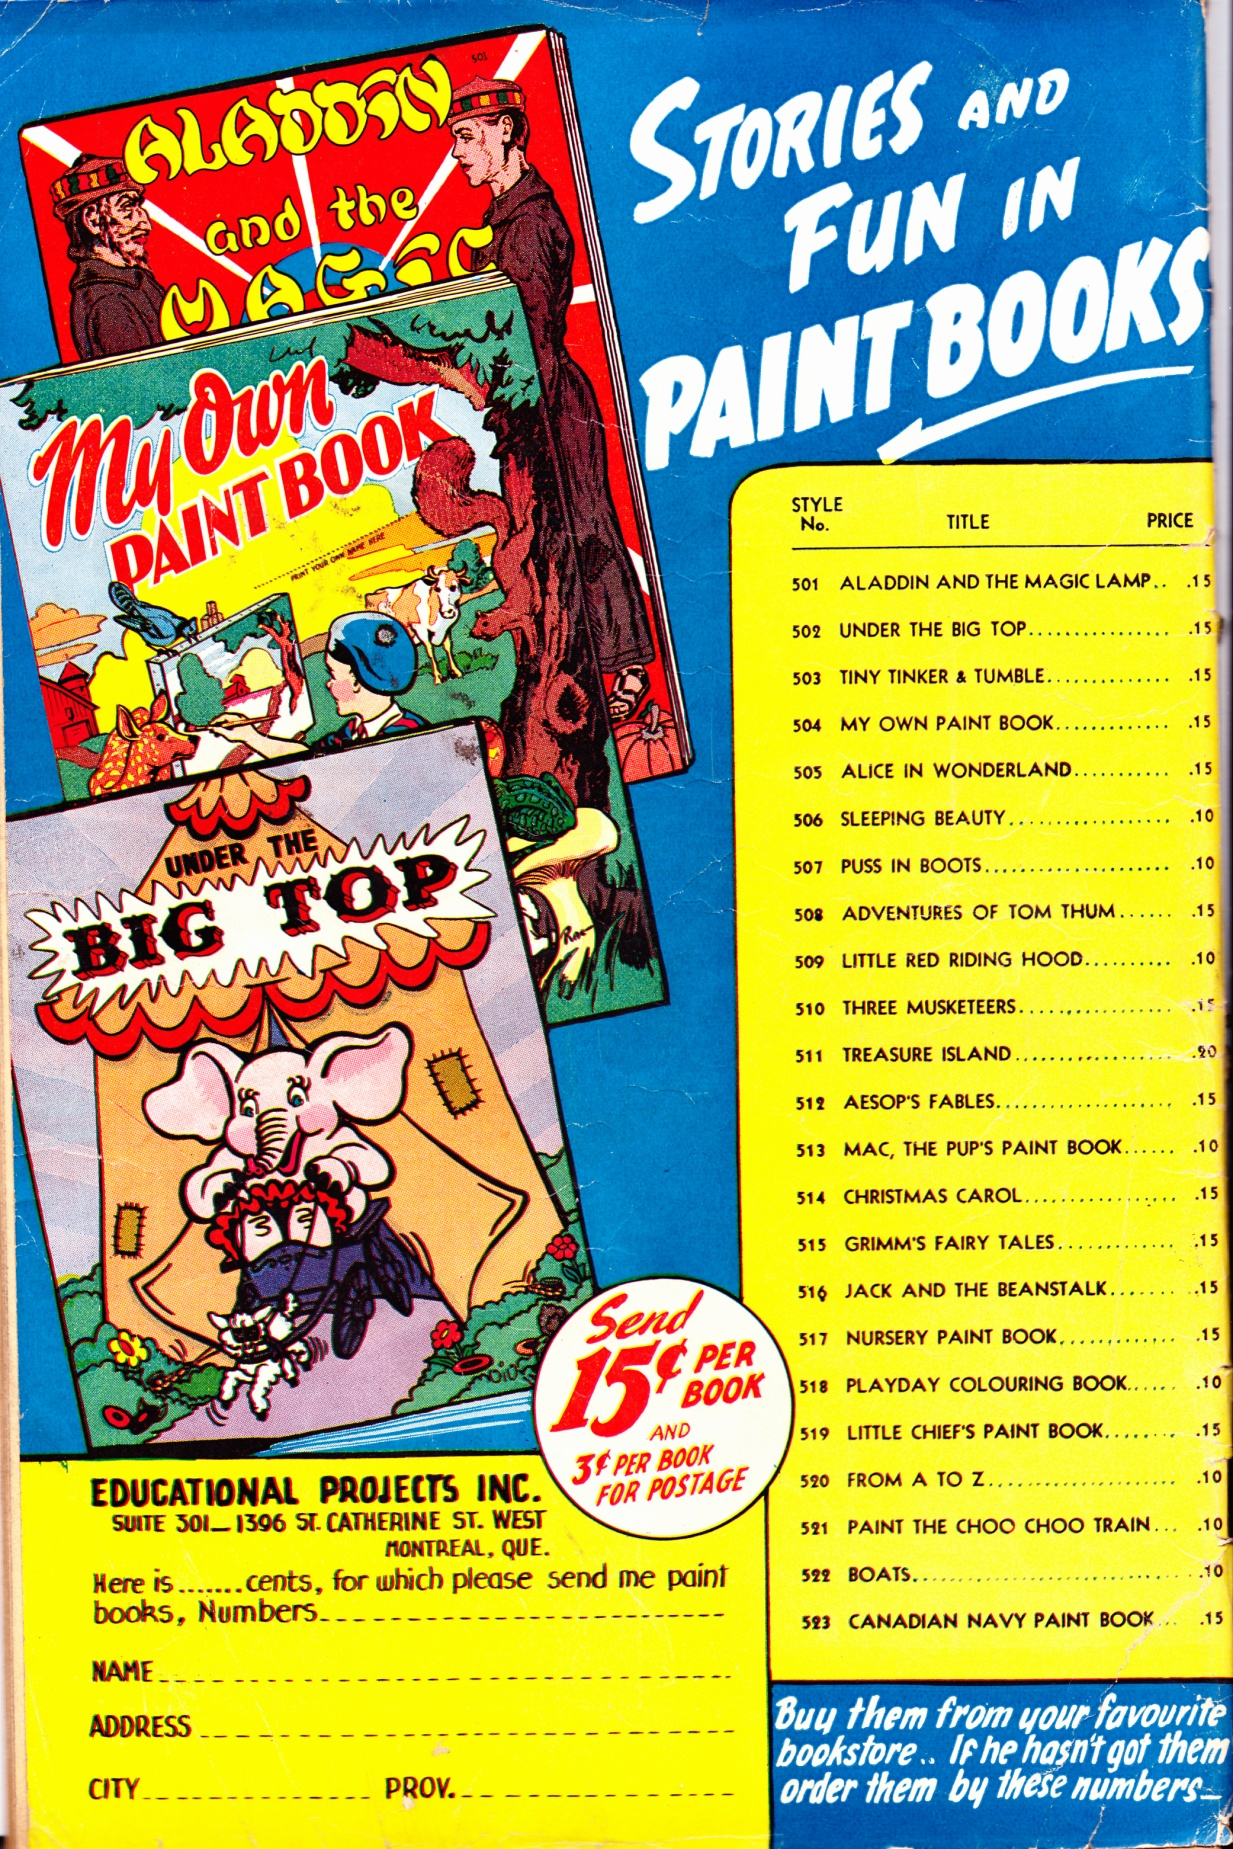 C:\Users\Robert\Documents\CARTOONING ILLUSTRATION ANIMATION\IMAGE COMIC BOOK COVERS\Advertising, Canadian Heroes, 4-1, June 1944, bc.jpg